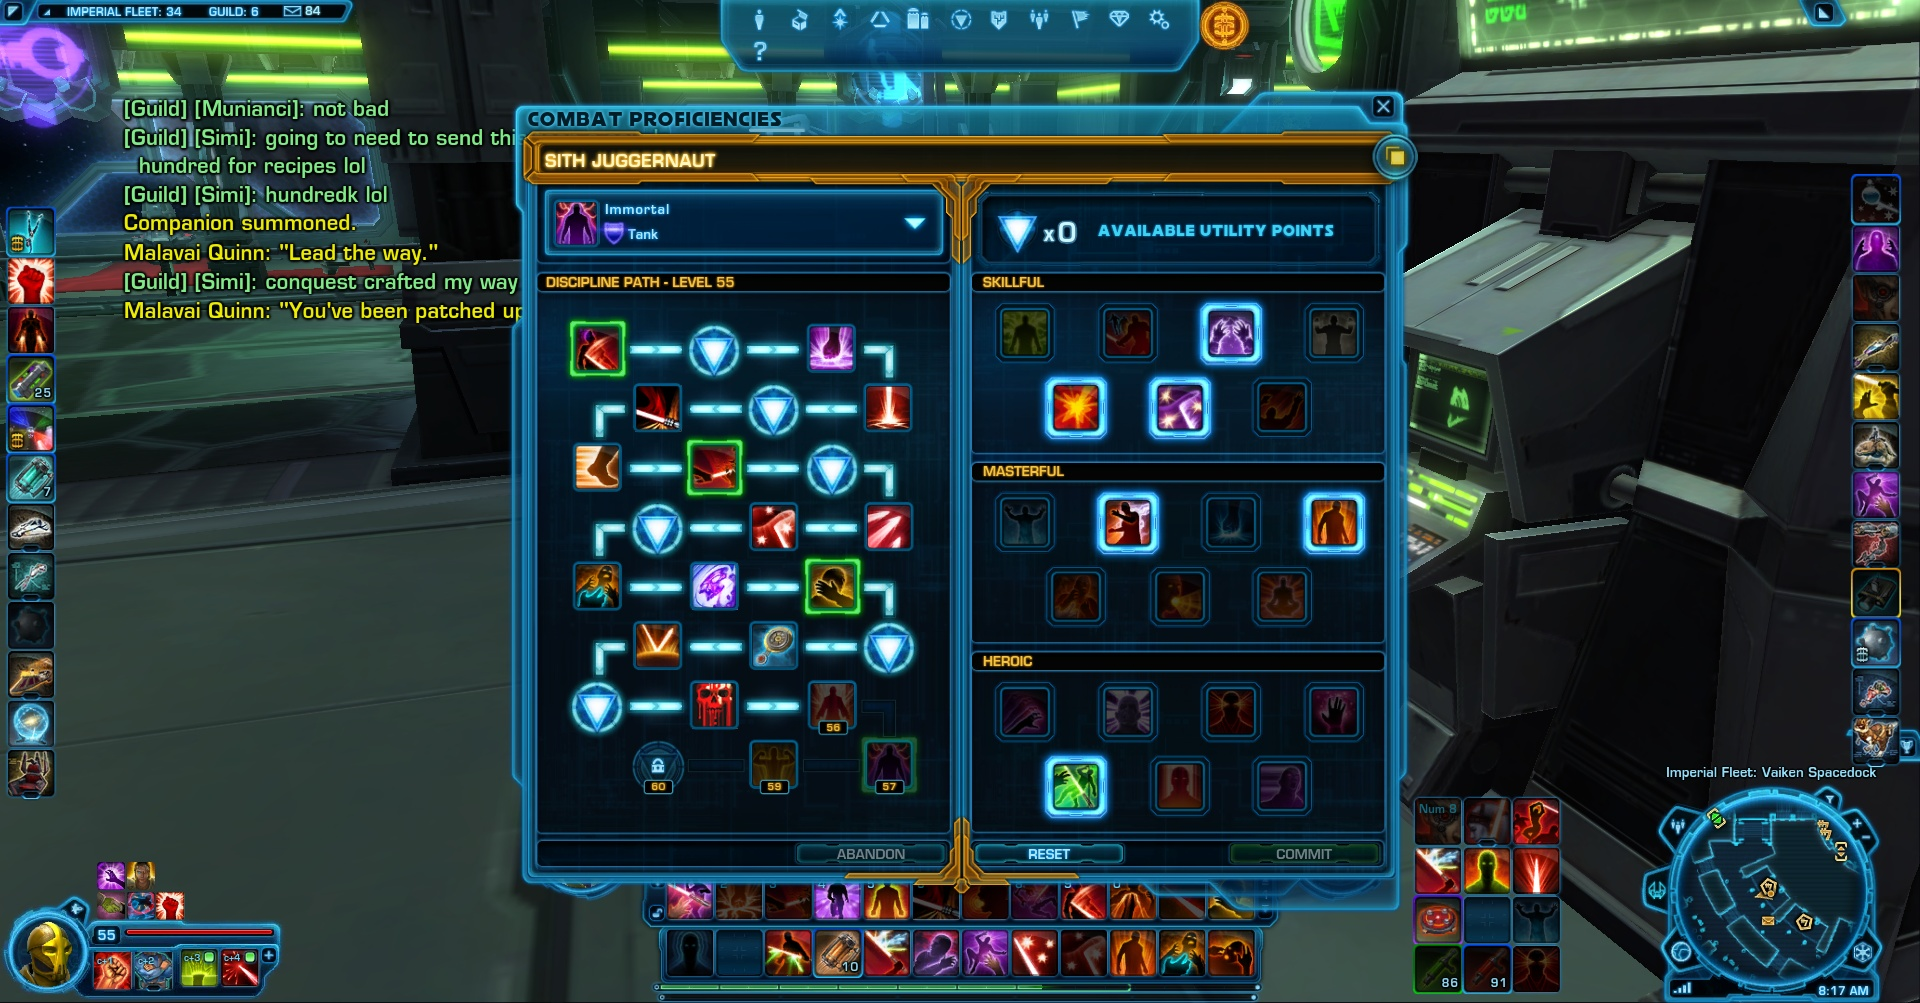 The new skill system in SWTOR for Juggernauts